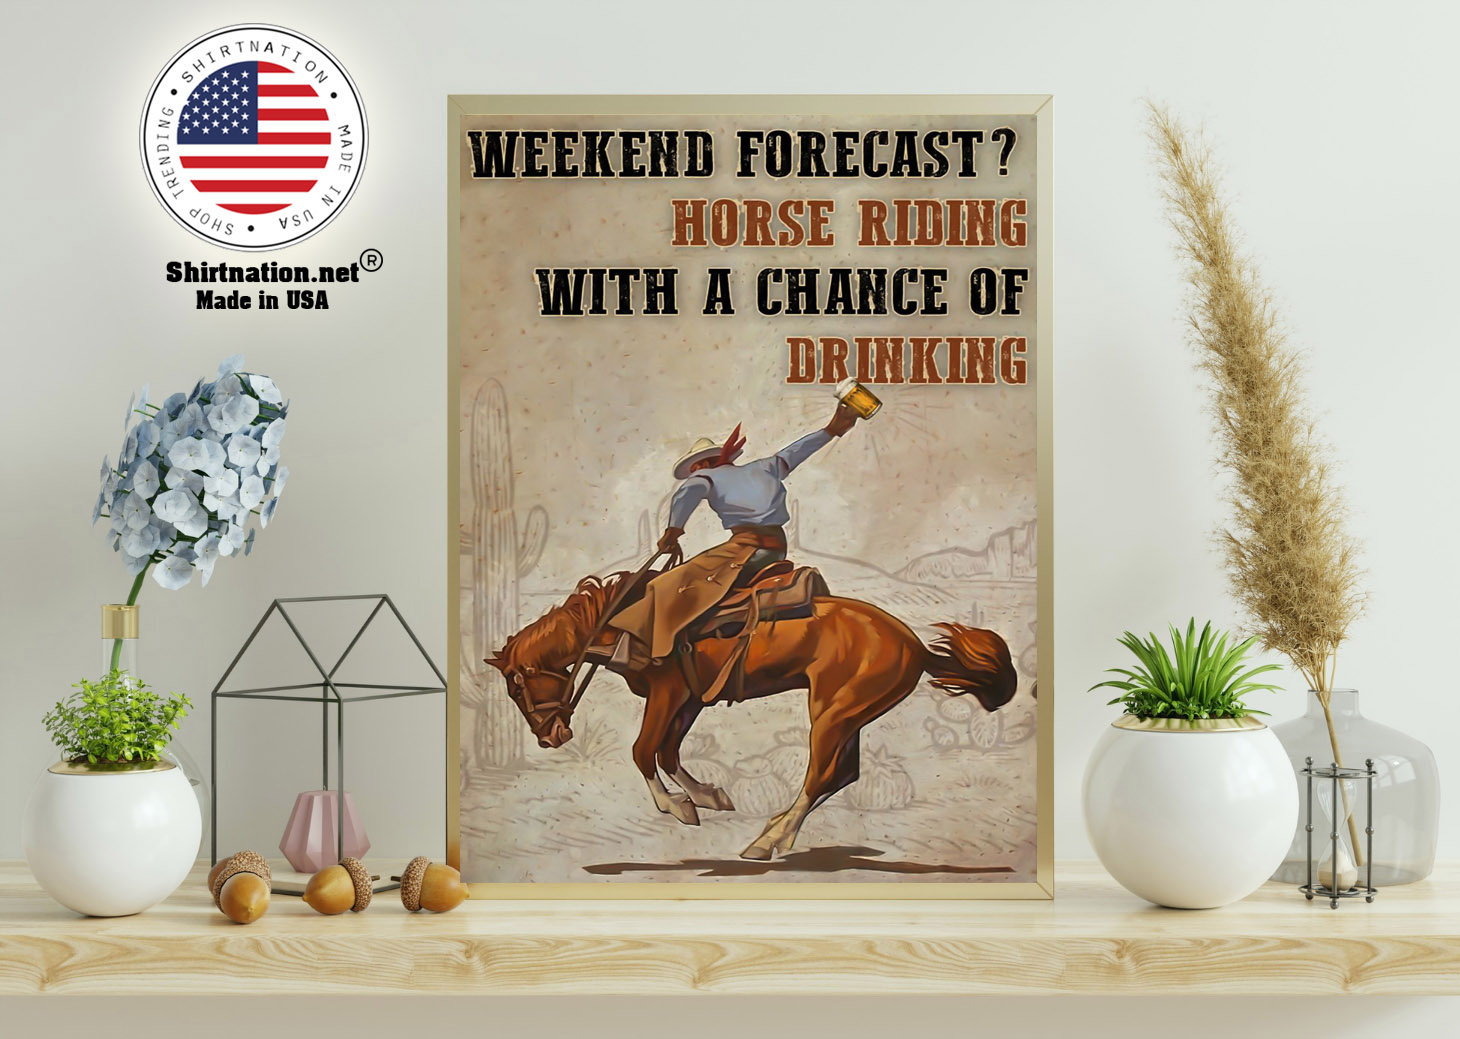 Weekend forecast horse riding with a chance of drinking poster 11